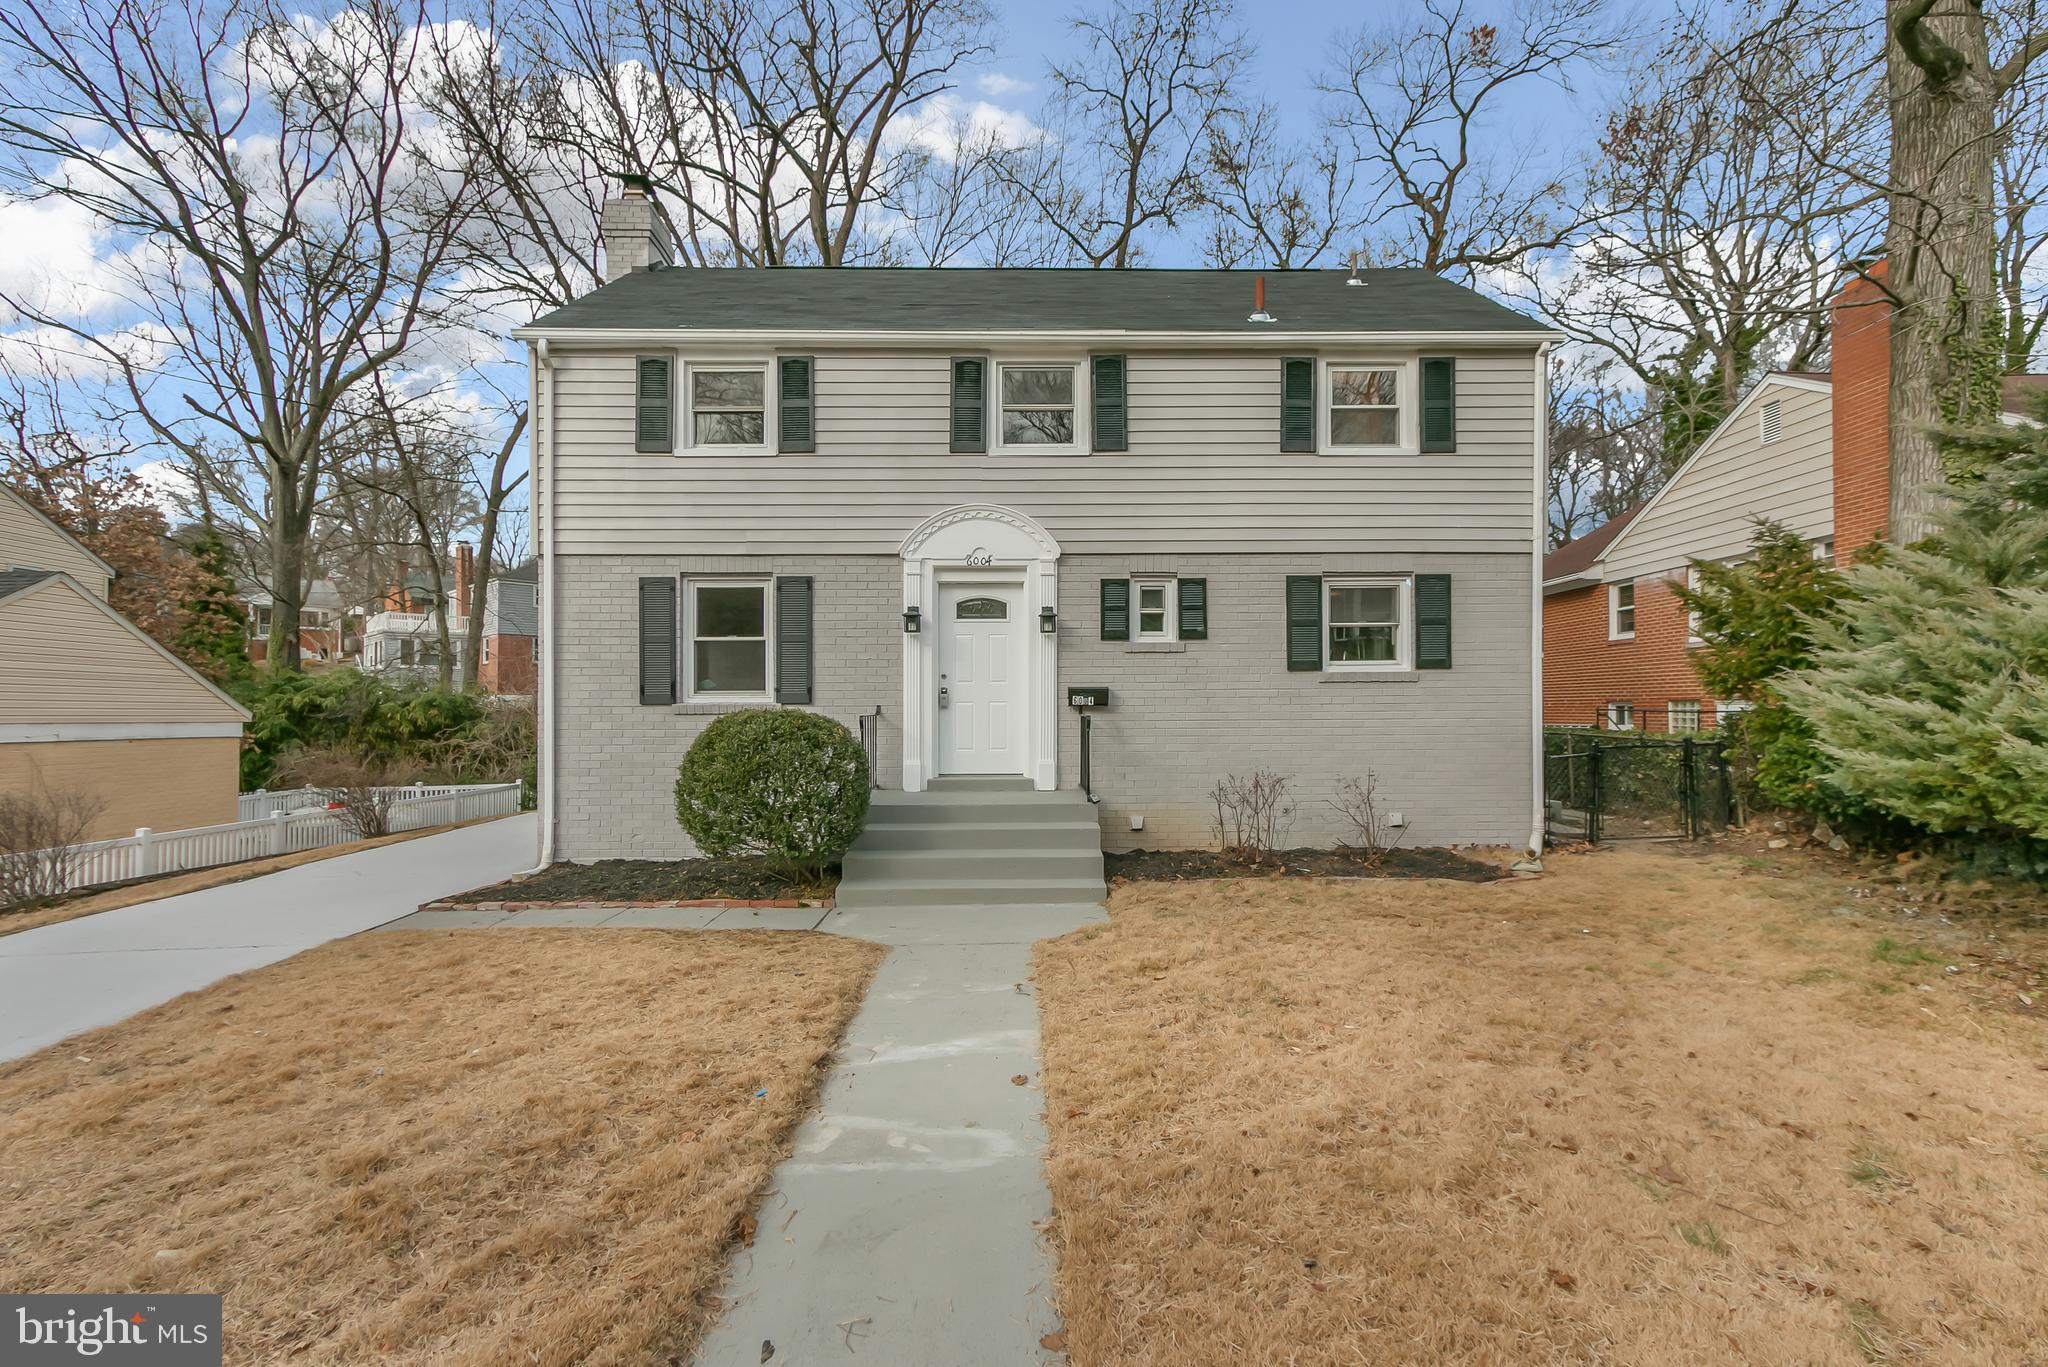 6004 FOREST ROAD, CHEVERLY, MD 20785